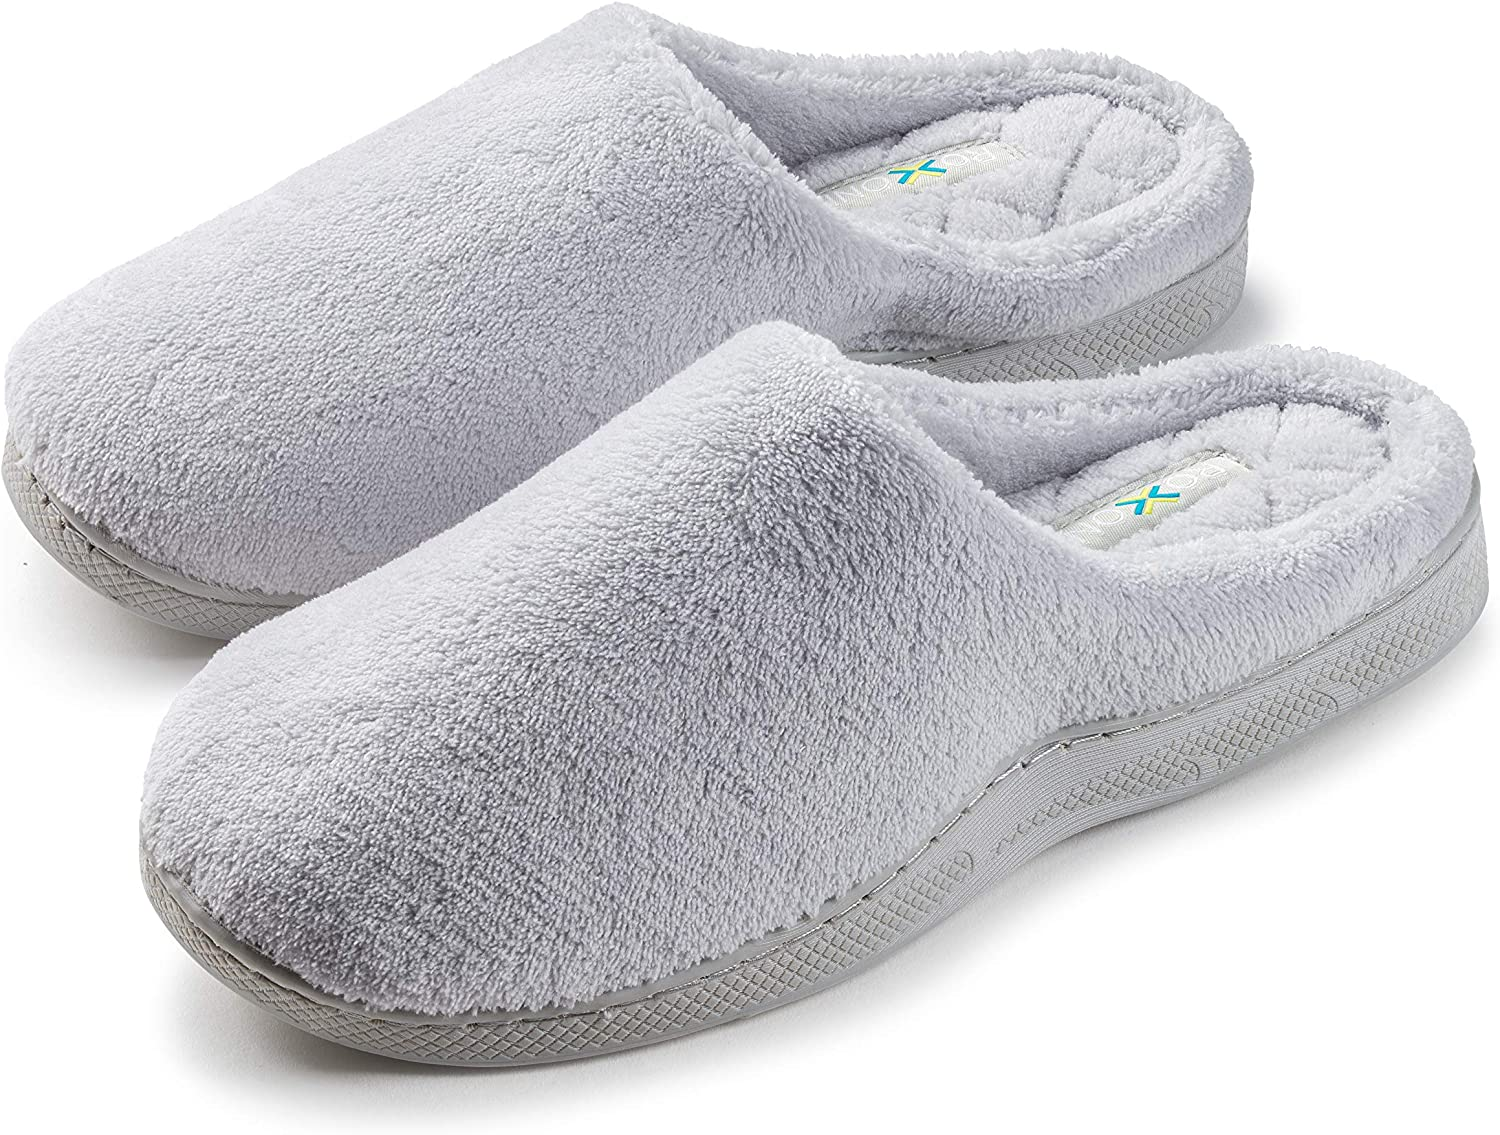 Joan Vass Ladies Terry Clog House Slippers Available in Megnacifint colors